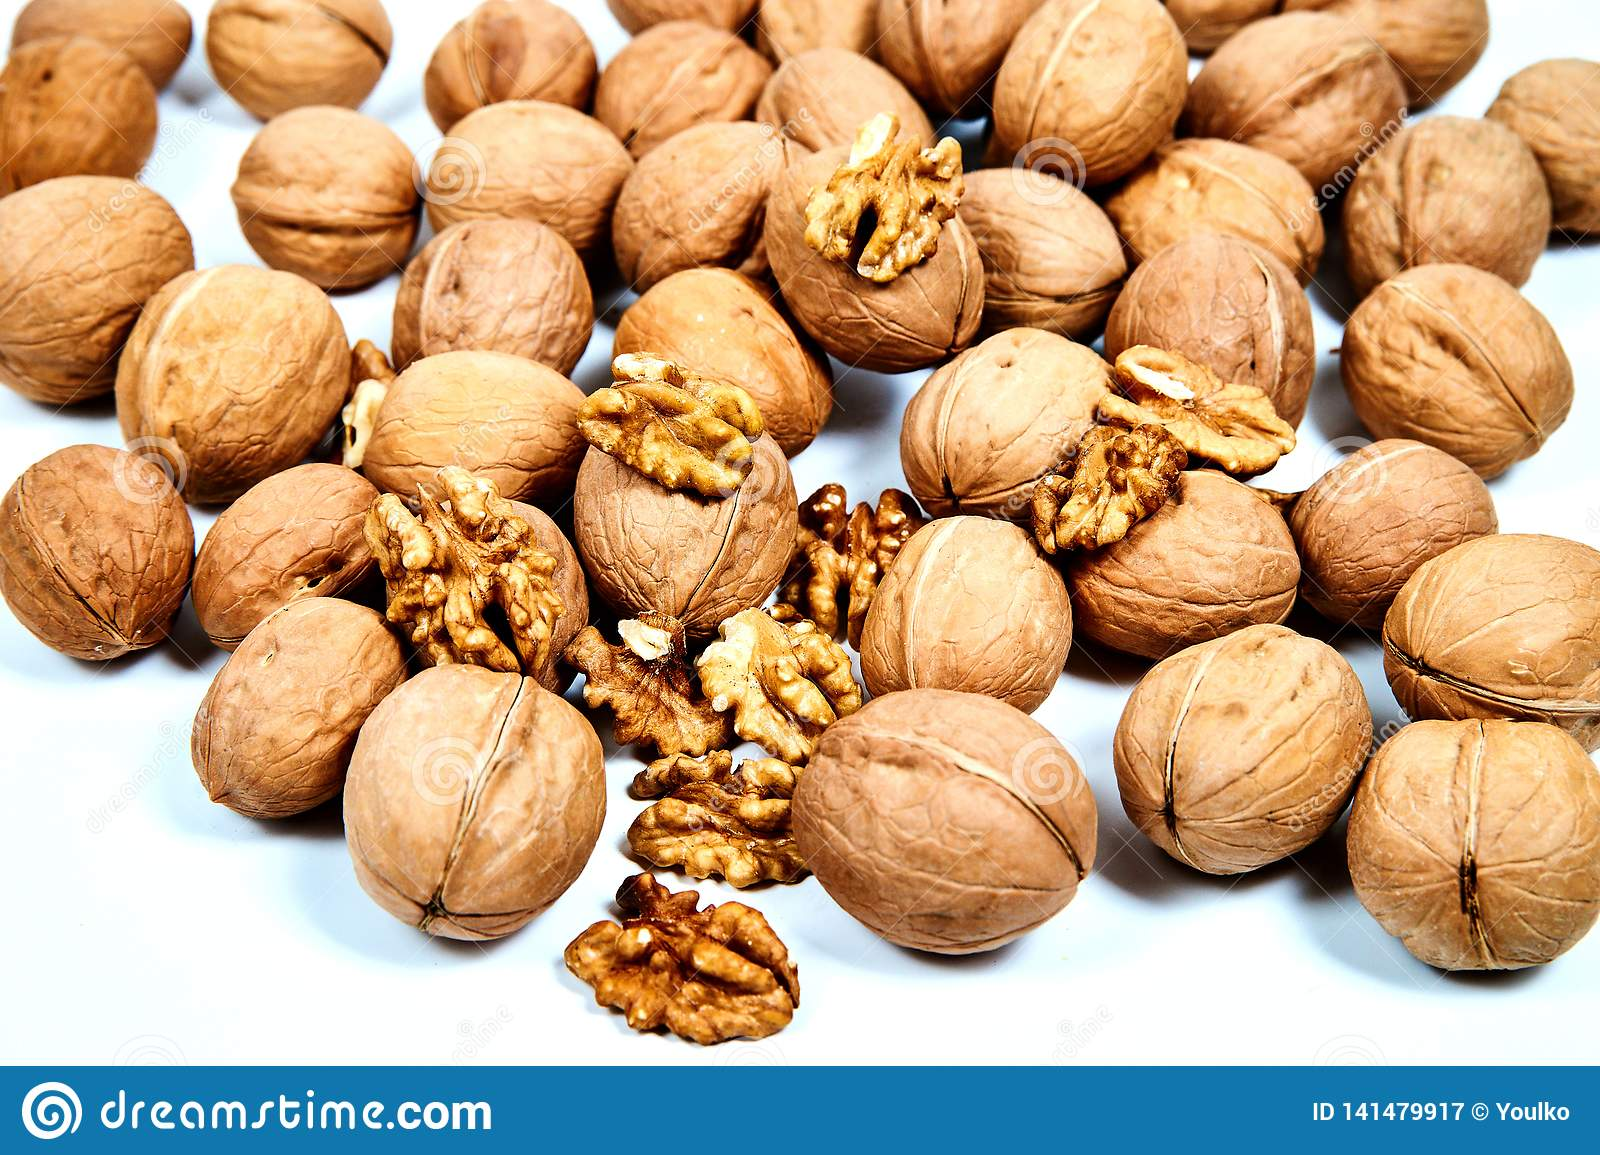 Lots of inshell Walnuts on white background